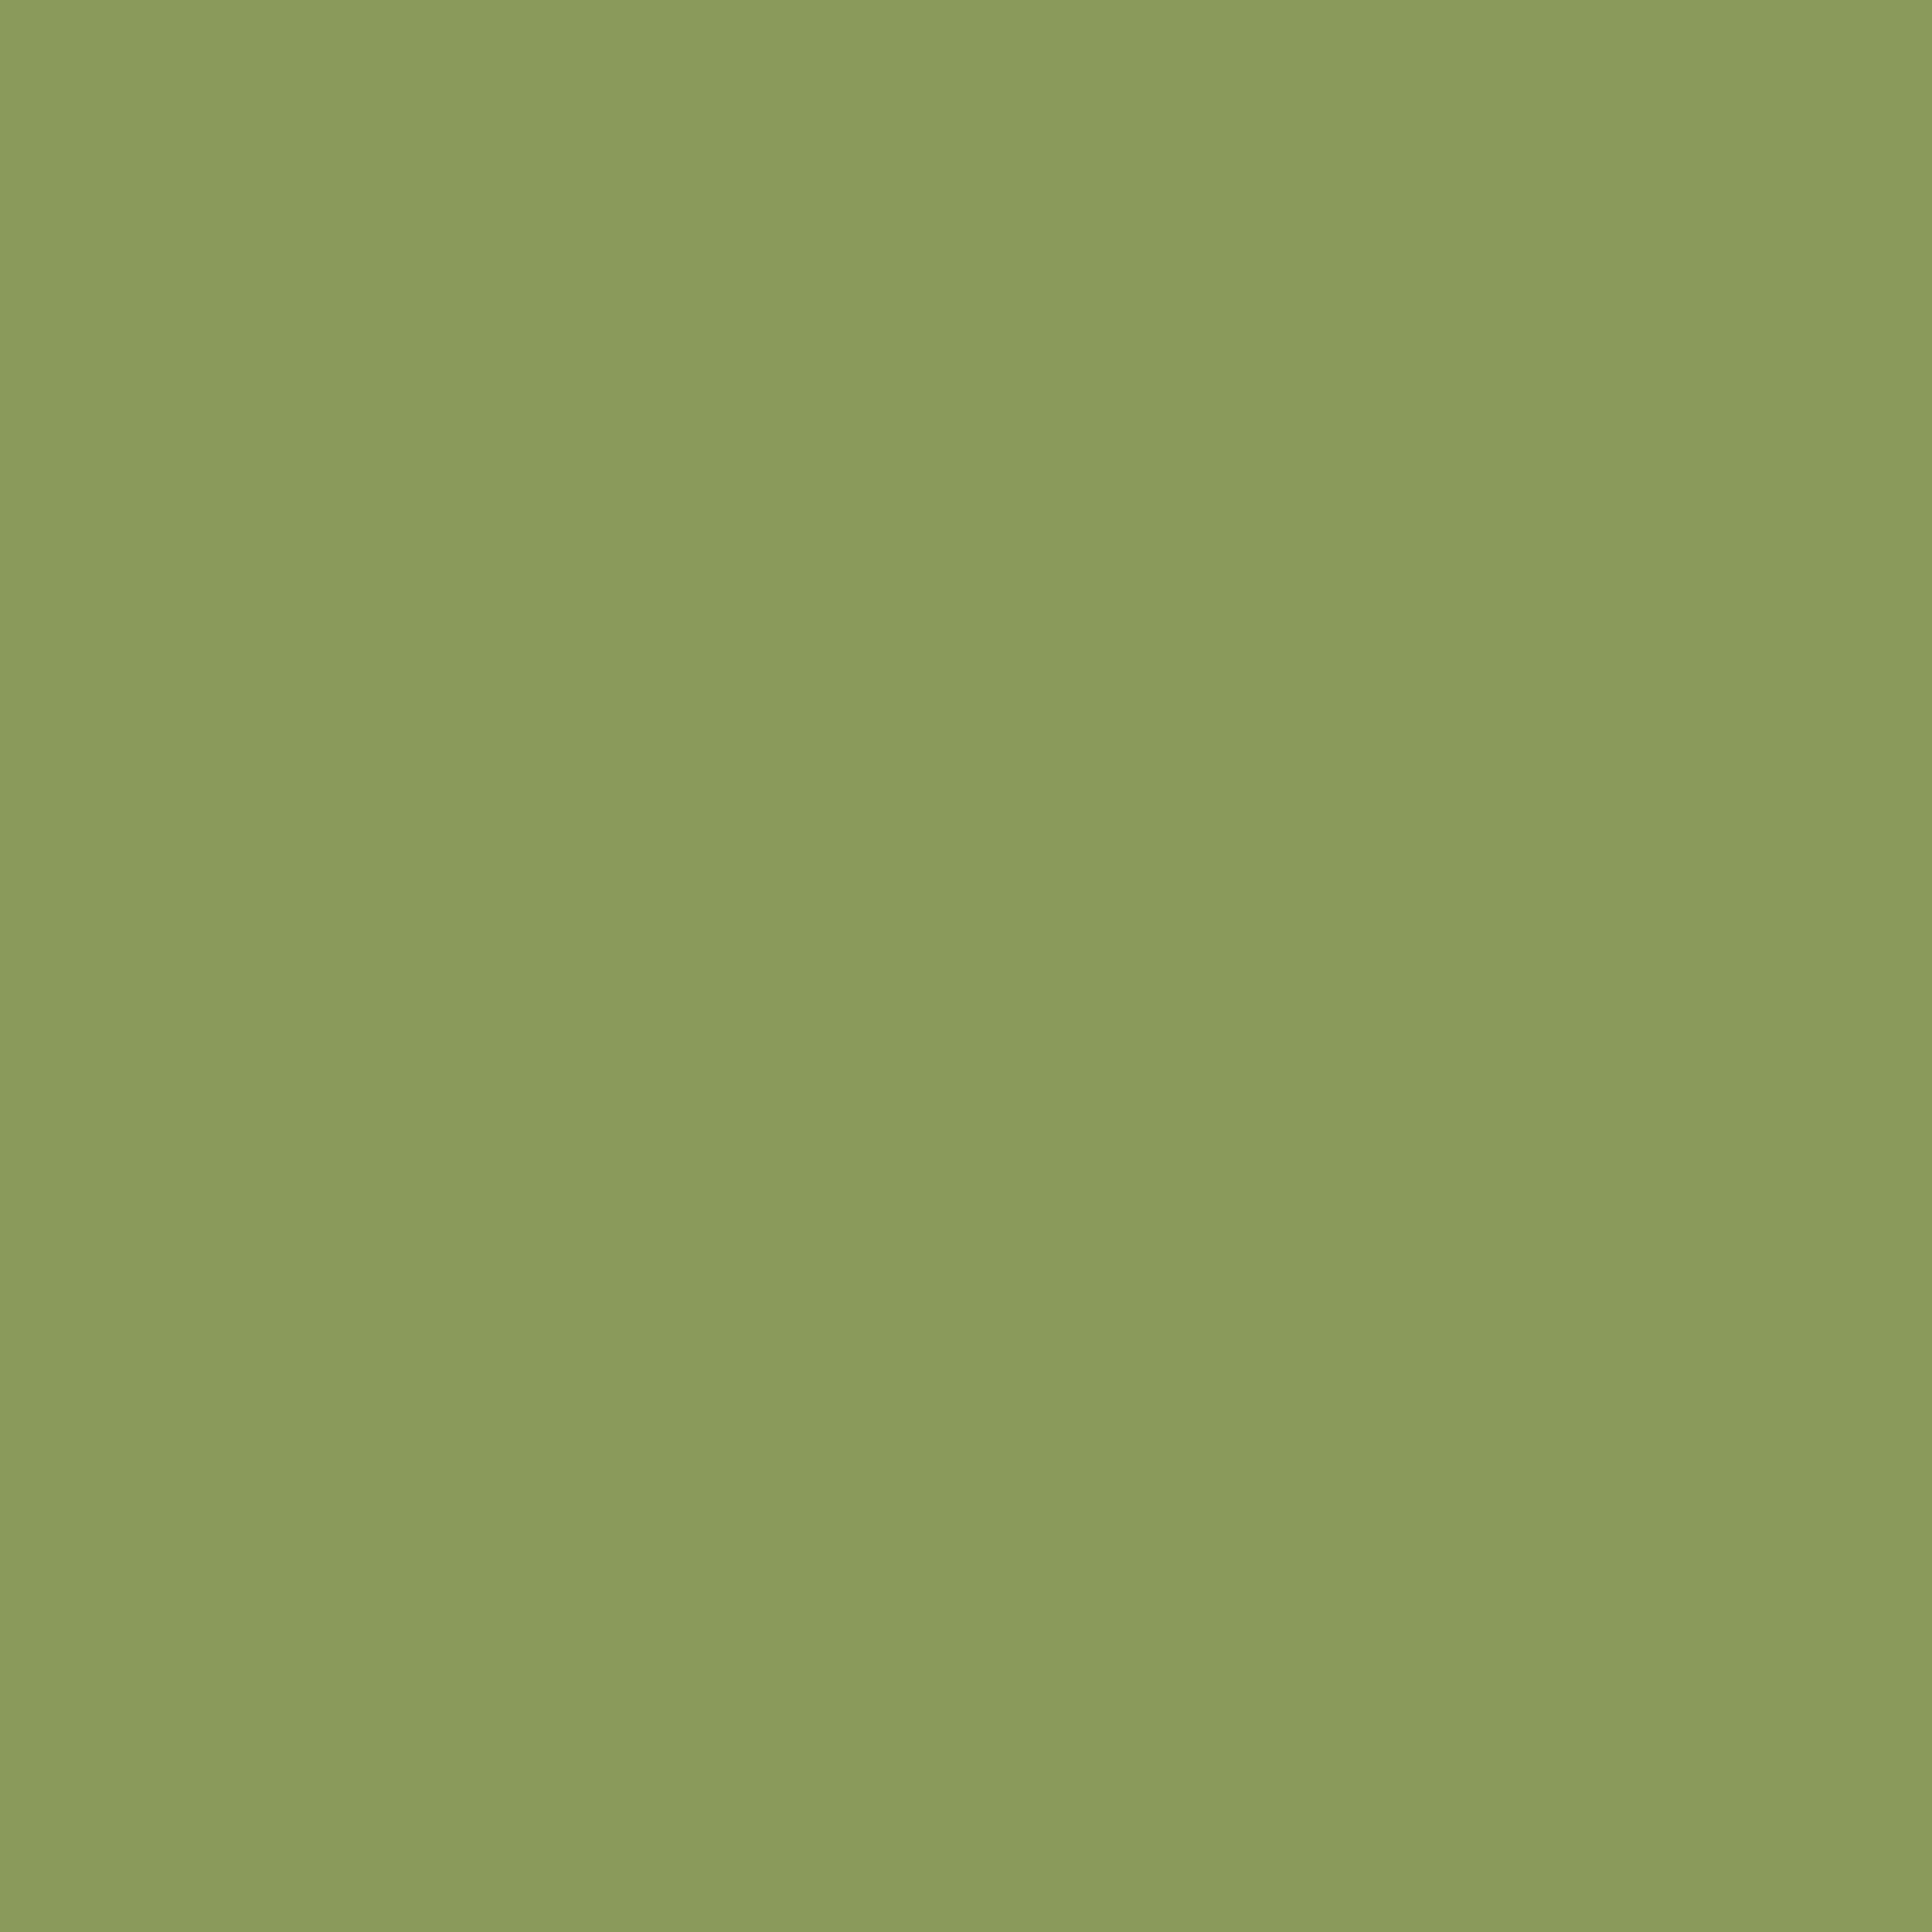 2048x2048 Moss Green Solid Color Background